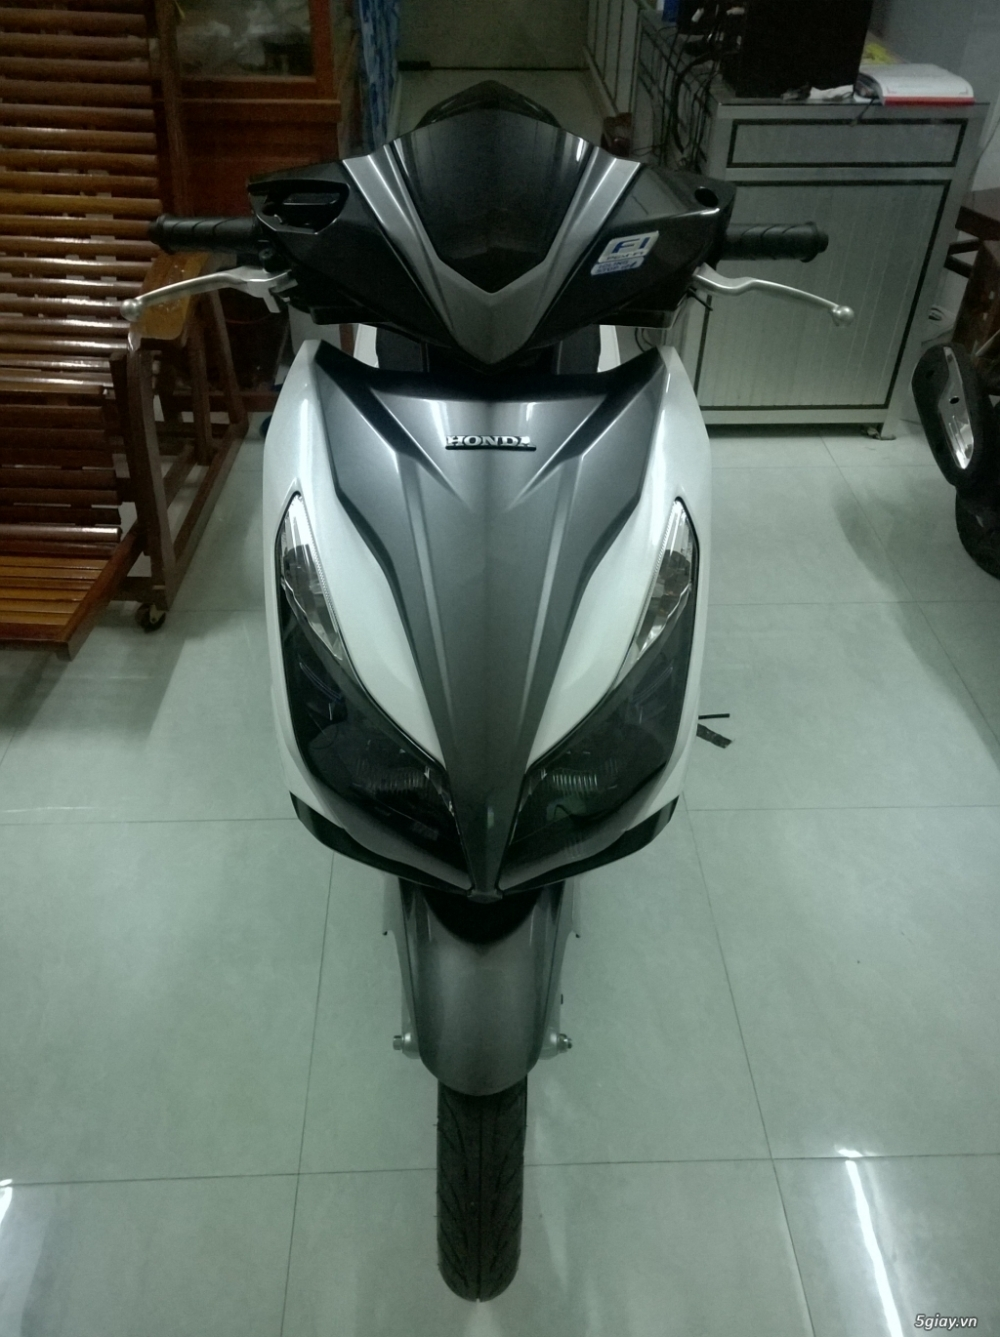 Air Blade FI 125cc moi 99 bien so VIP ngu quy 33333